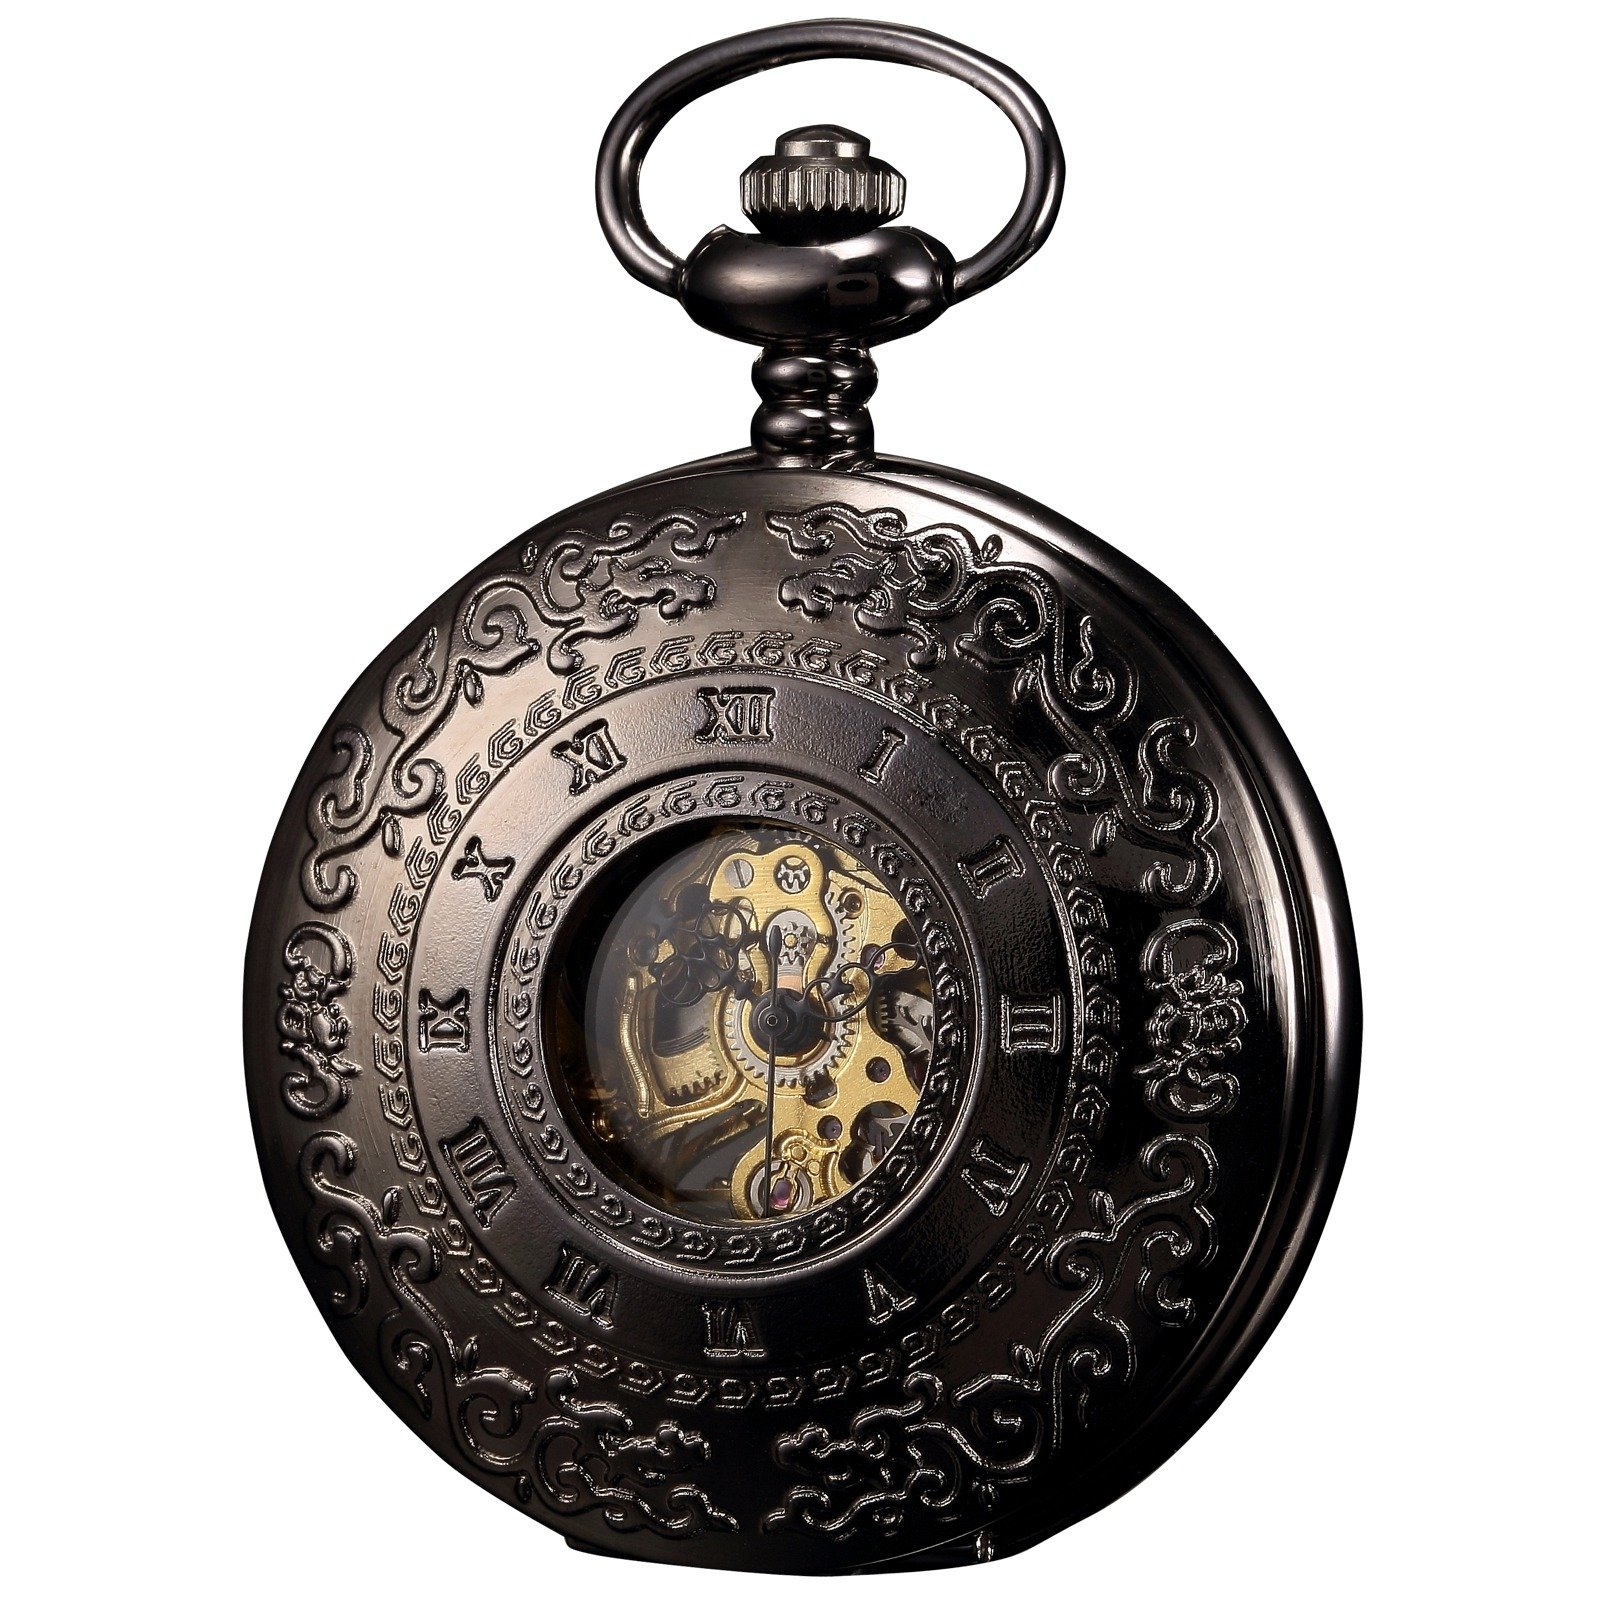 ++CANALOHA:)++ KS Half Hunter Black Engraving Case Men's Gift Pocket Watch with Chain